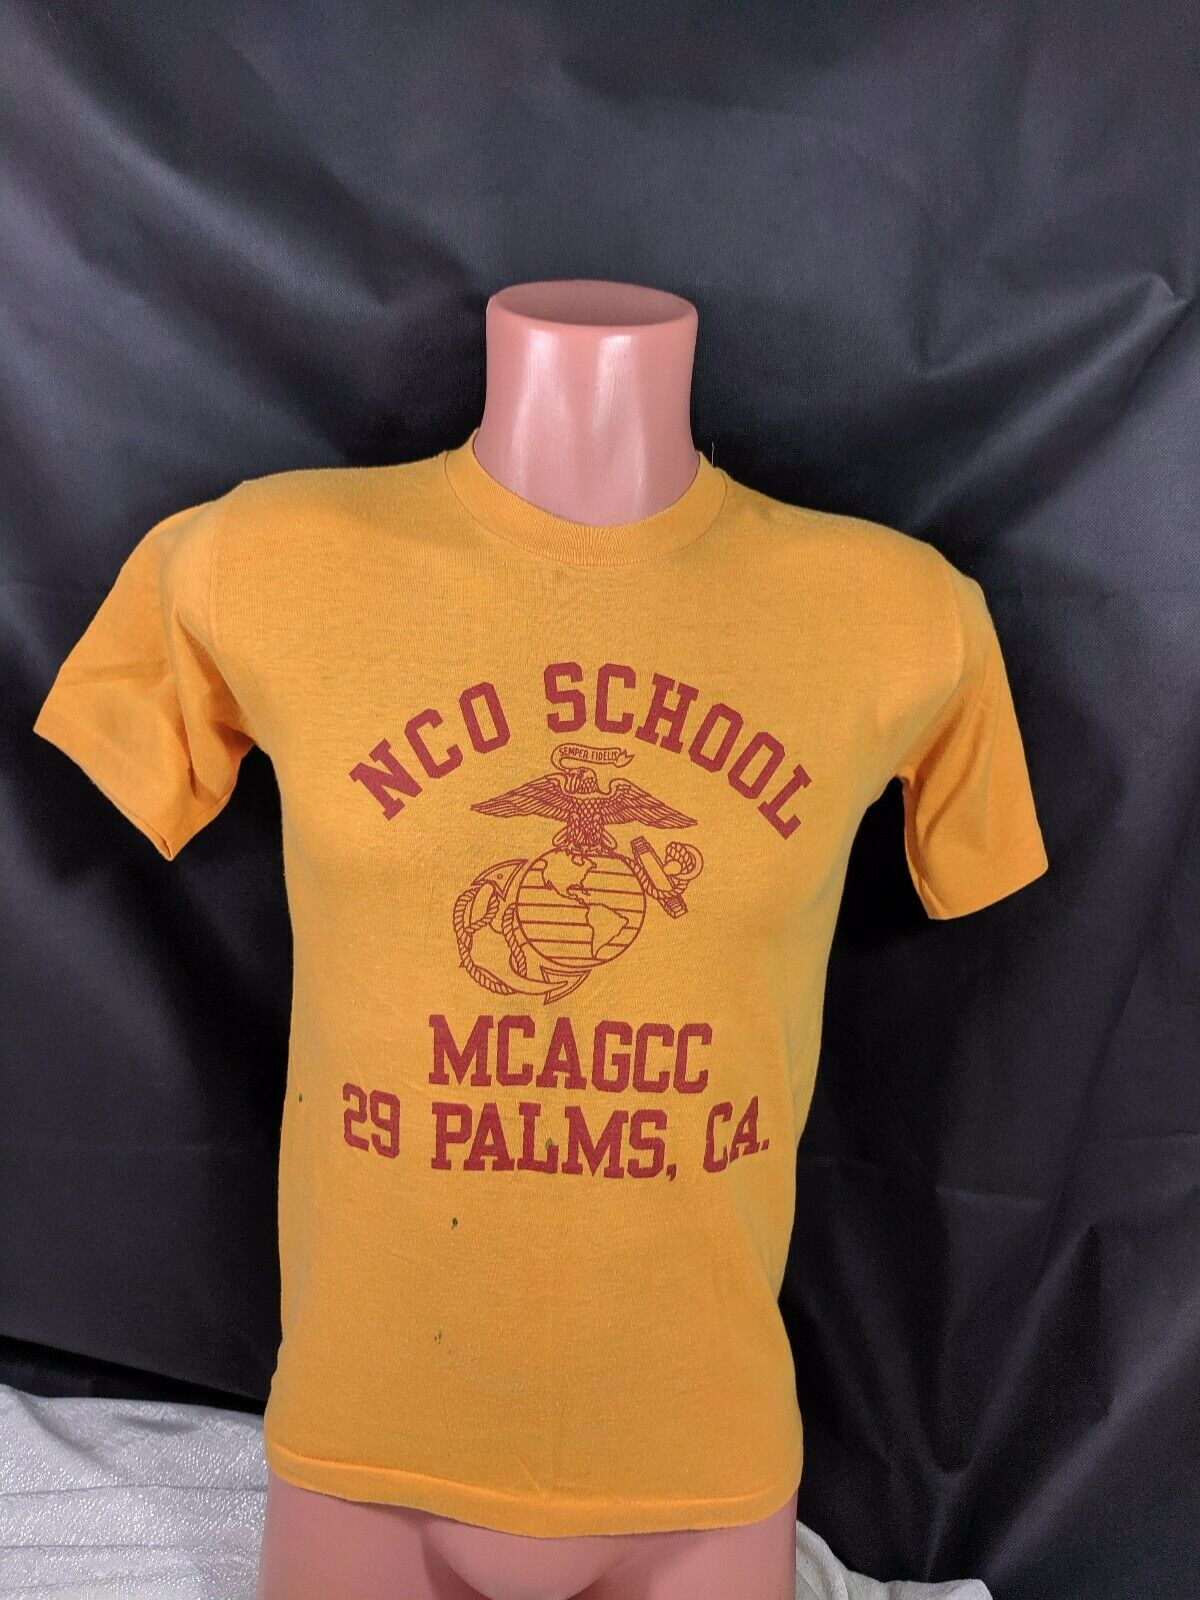 Vtg 70s 80s NCO School MCAGCC 29 Palms California T-hemd Sz Medium Velva Sheen